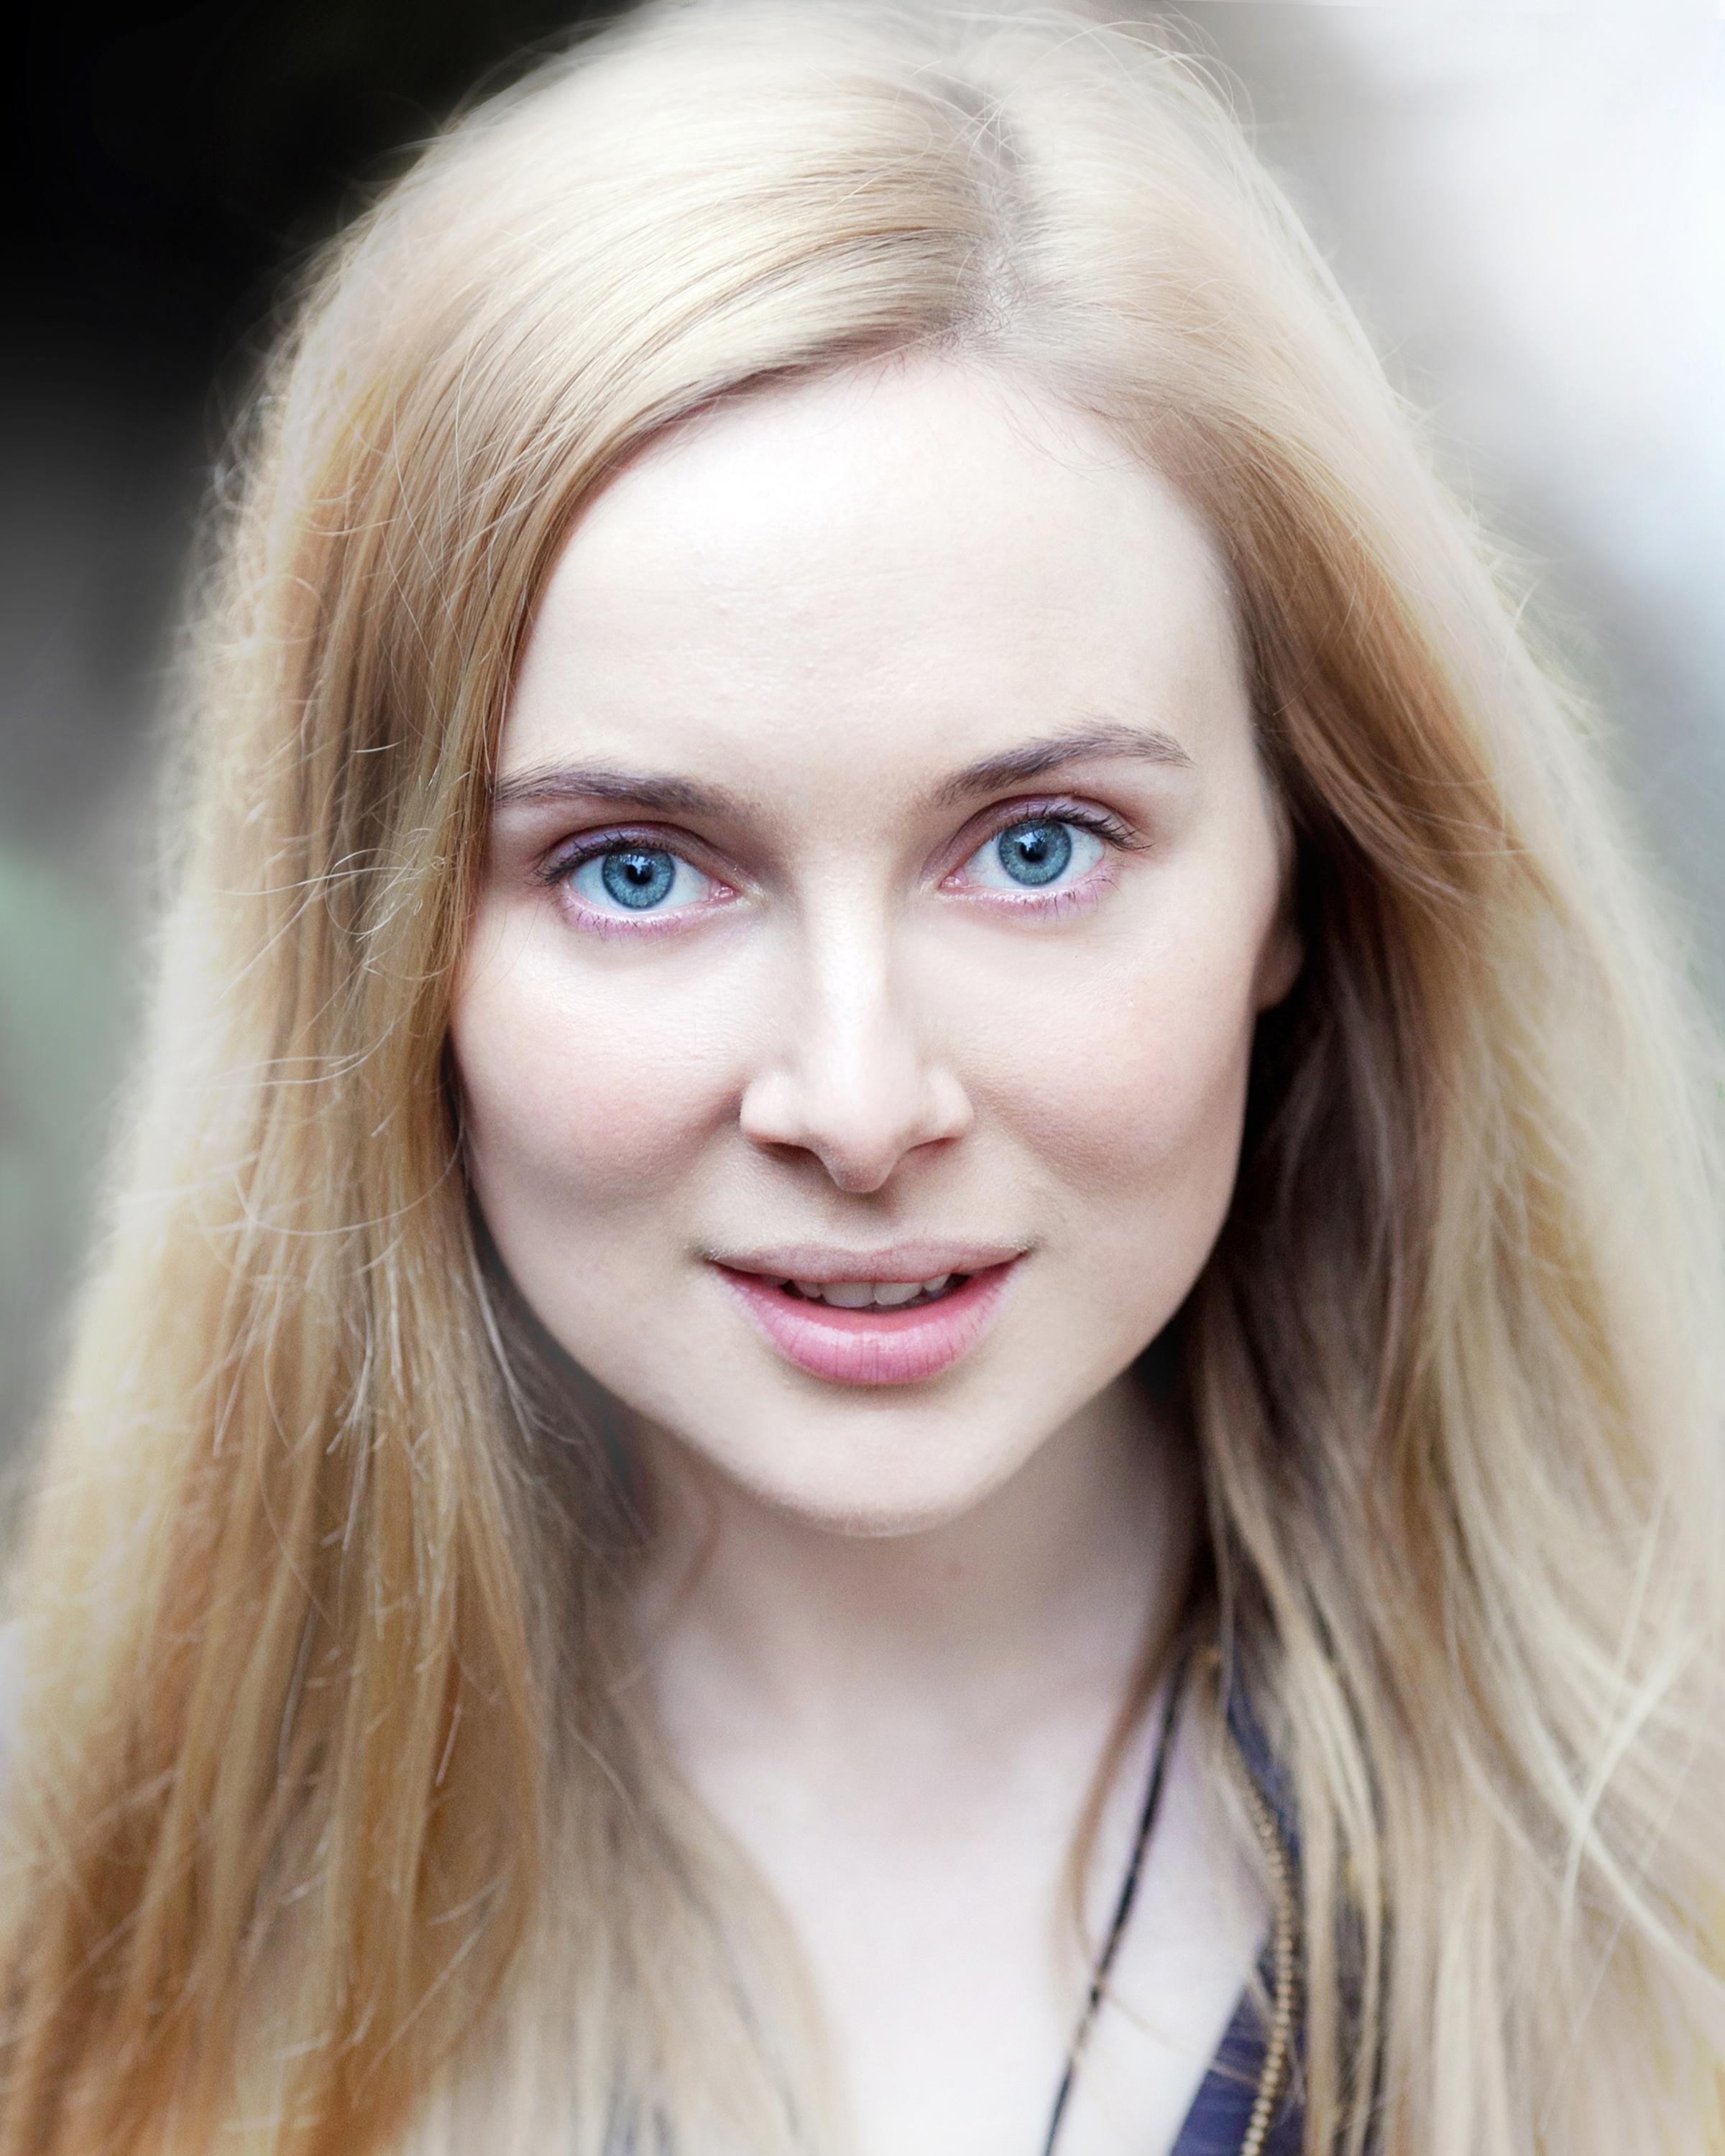 FAYE SEWELL A CONVERSATION WITH THE BRITISH ACTRESS